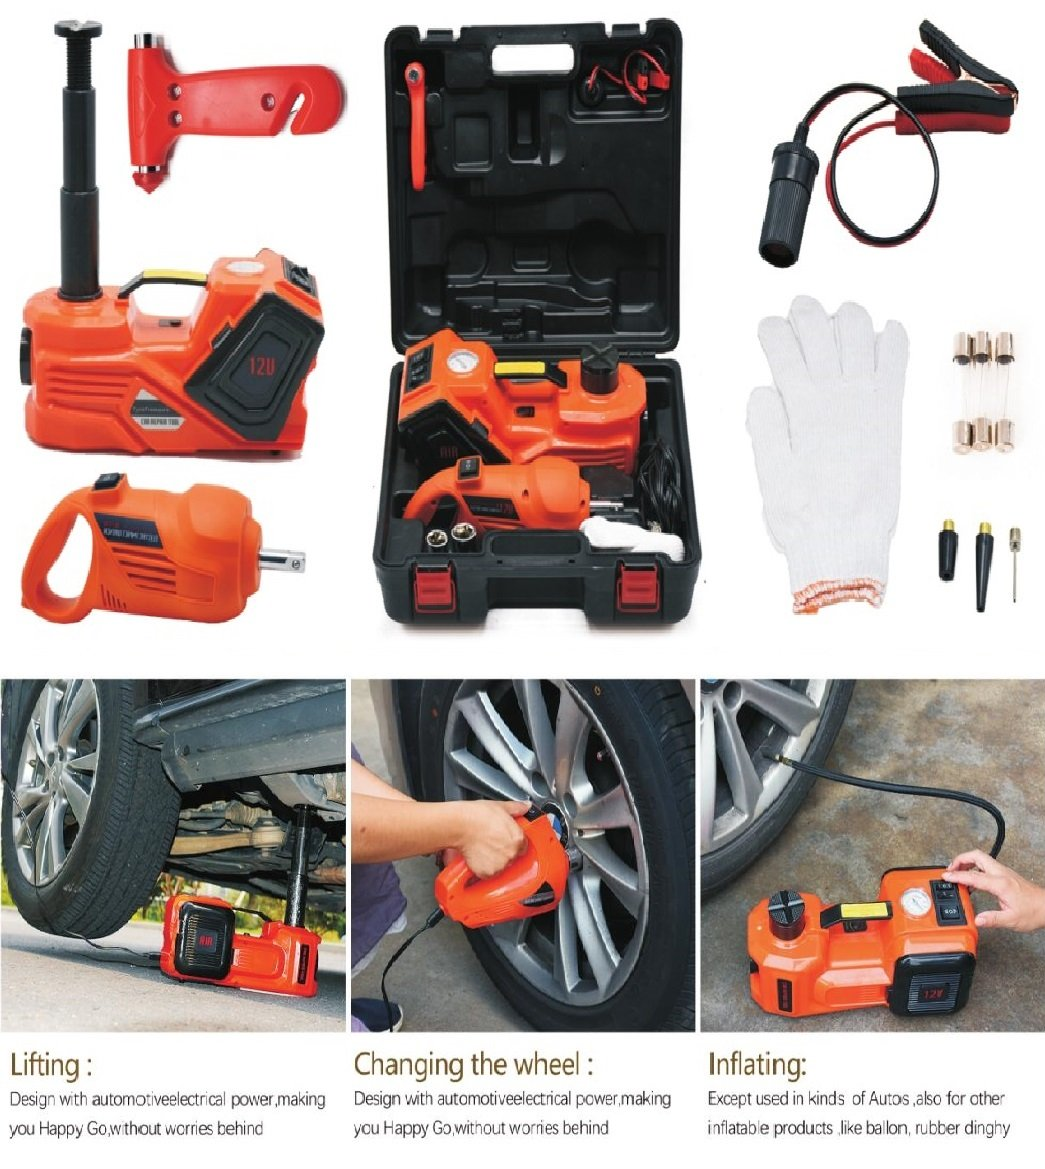 4 Set 1 for car ZSTT01 Electric Hydraulic Floor Jack and Tire Inflator Pump and LED Flashlight 3 in 1 Set with Electric Impact Wrench Car Repair Tool Kit for Car SUV 6600lb atliprime 12V DC 3.0T